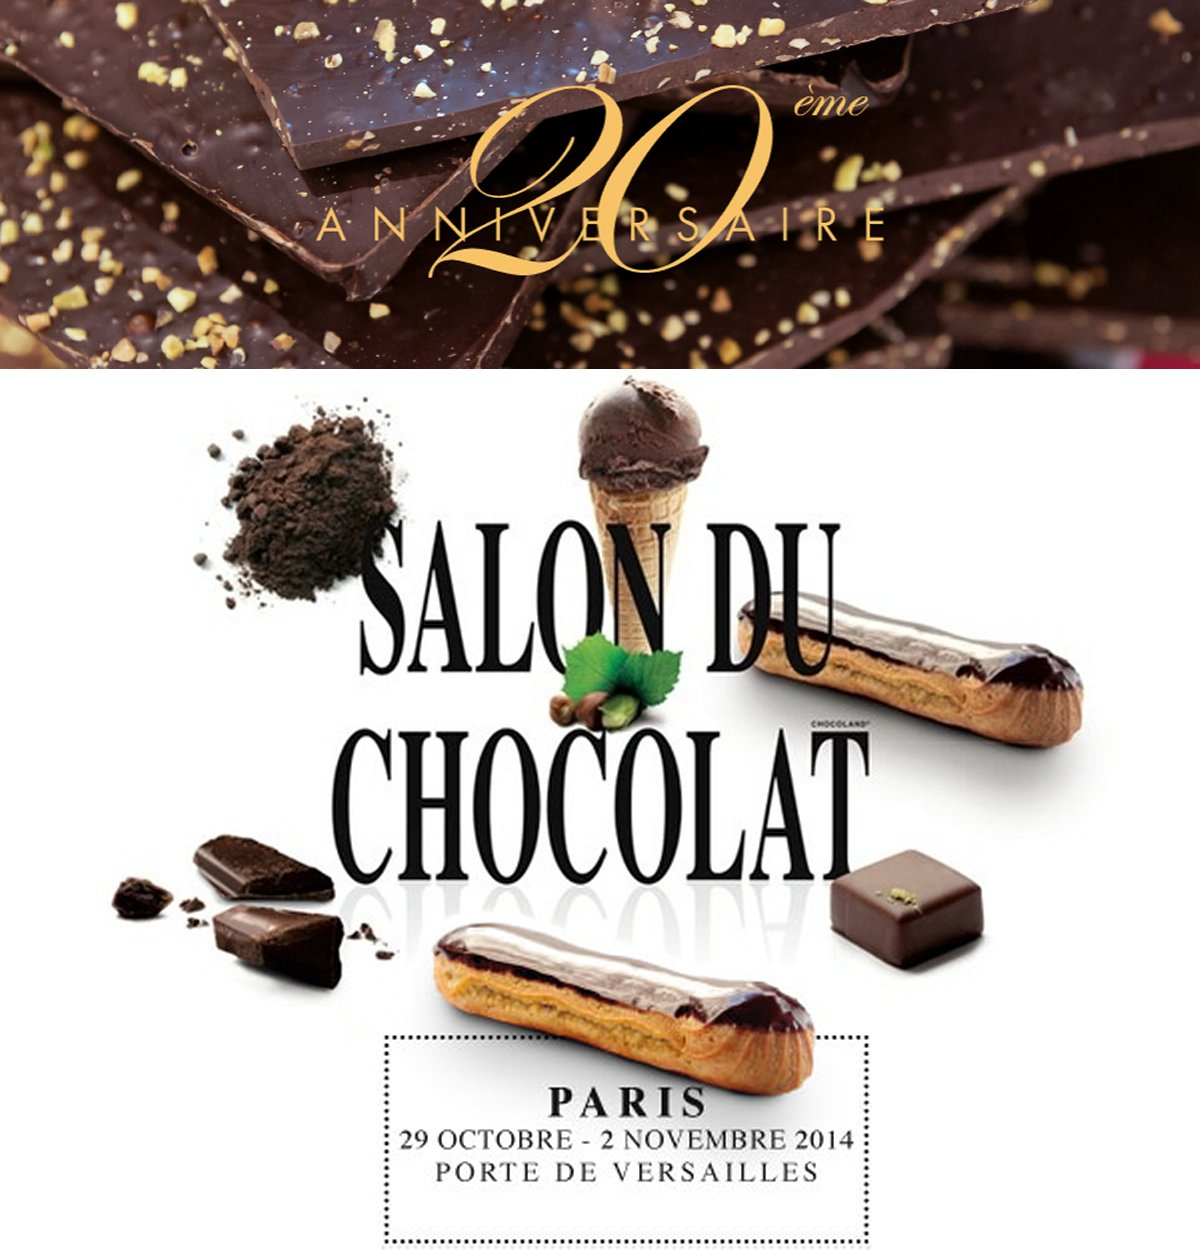 breaking news salon du chocolat paris 2014 tablette de chocolat tablettedechoc.com